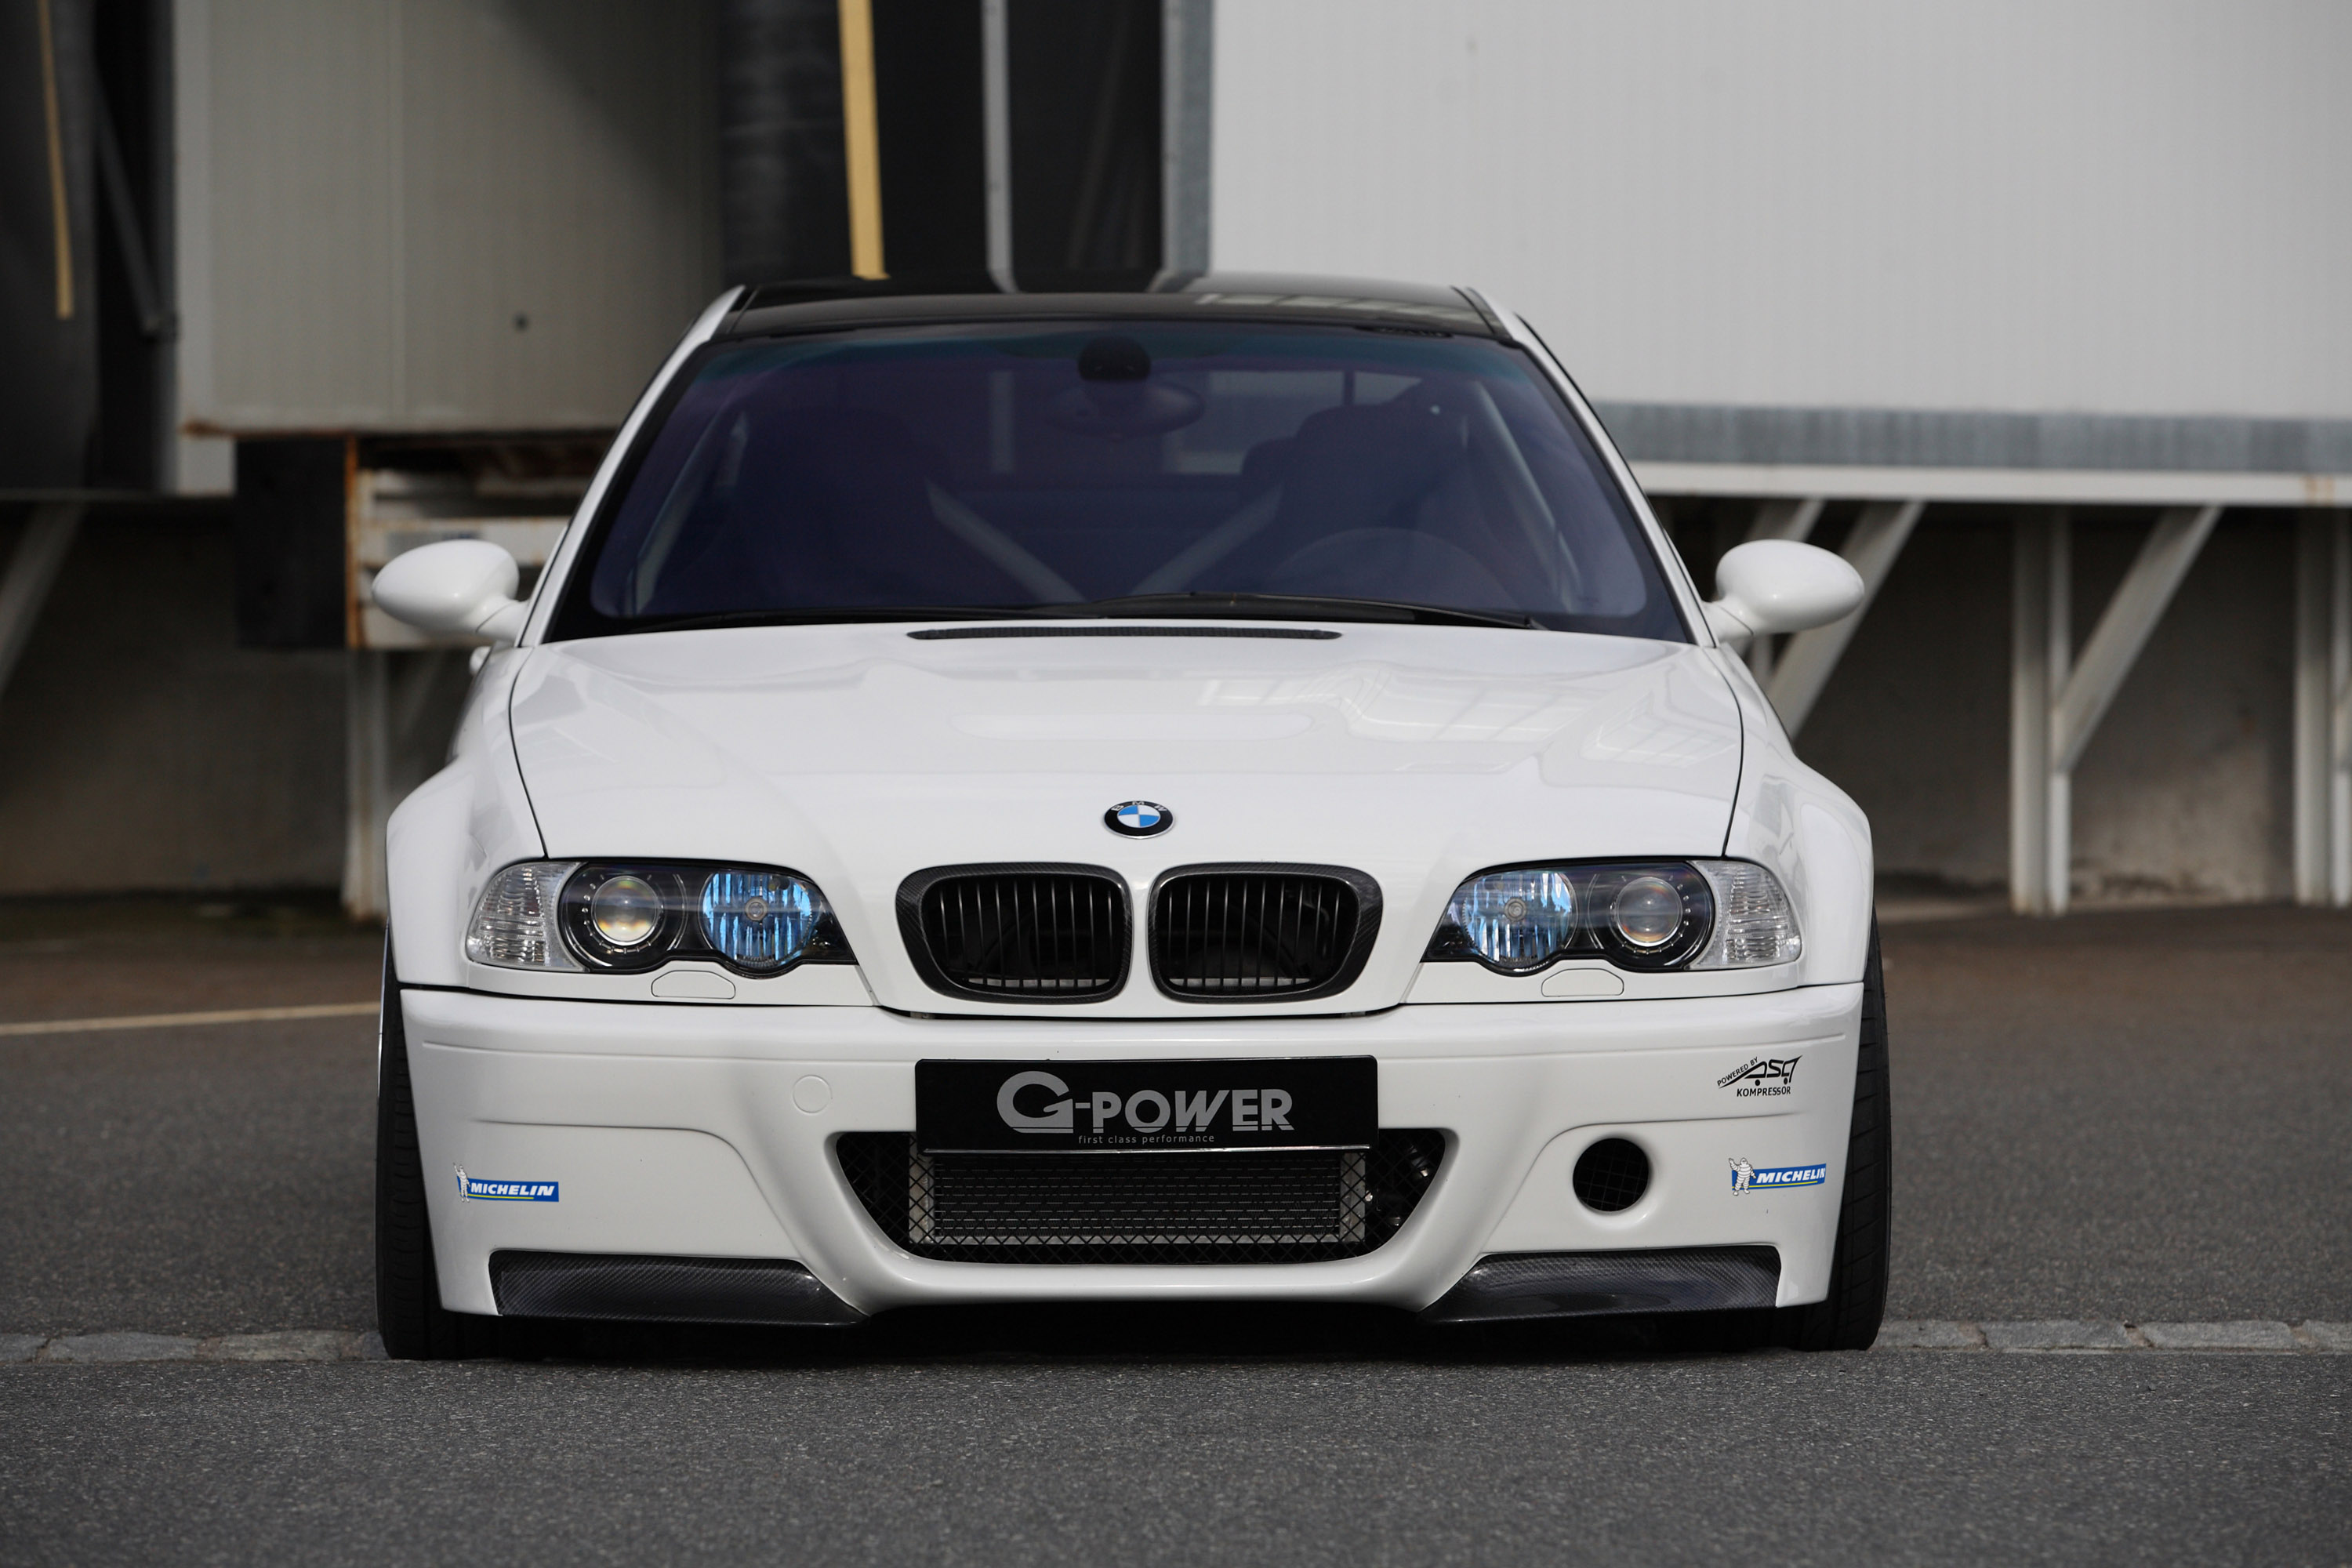 bmw m3 e46 with 450hp by g power. Black Bedroom Furniture Sets. Home Design Ideas